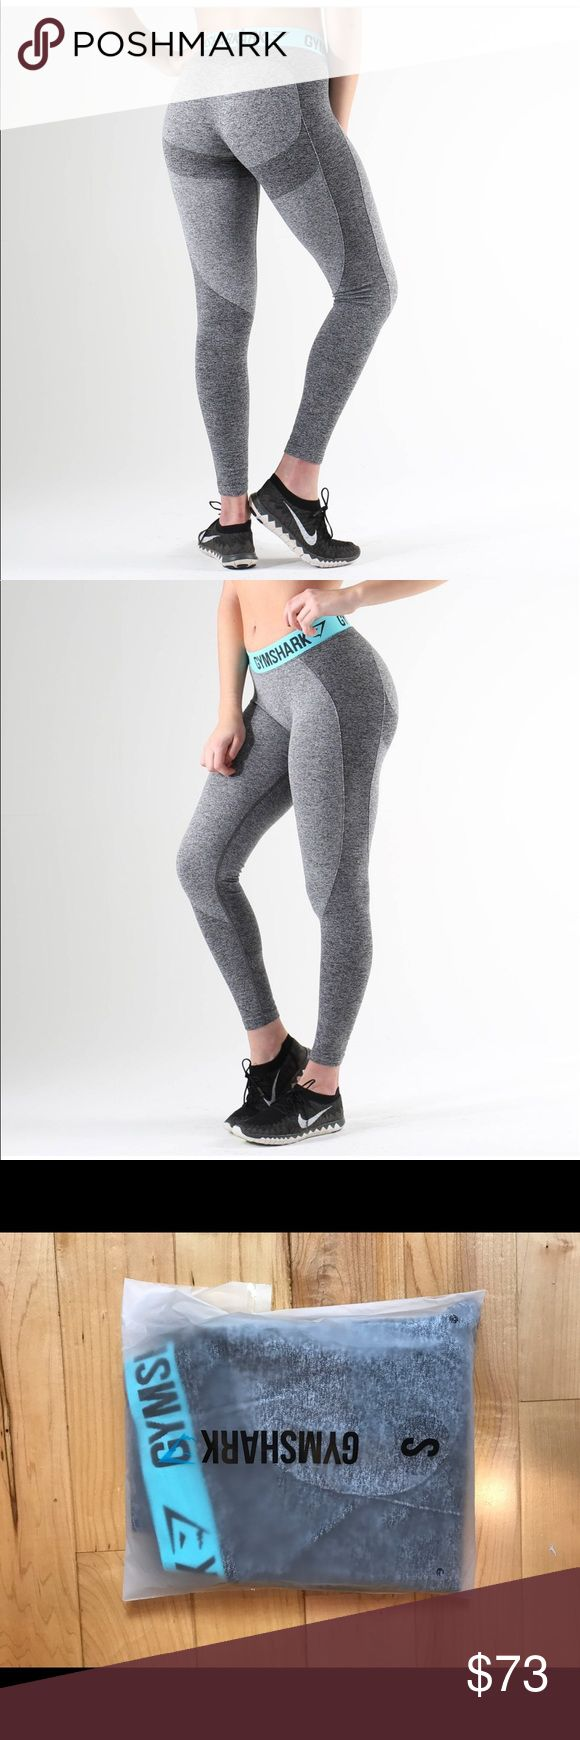 Gymshark Flex Legging - Turquoise Gymshark Flex Legging NEW WITH TAGS!  Tried on once for a review video.  Size: SMALL  Color: Charcoal Marl/Pale Turquoise  Purchased for a review video and do not want to pay to return them!  NO TRADES. NO HOLDS. Smoke Free & Pet Free Home. Buy before it sells out. Gymshark Pants Leggings